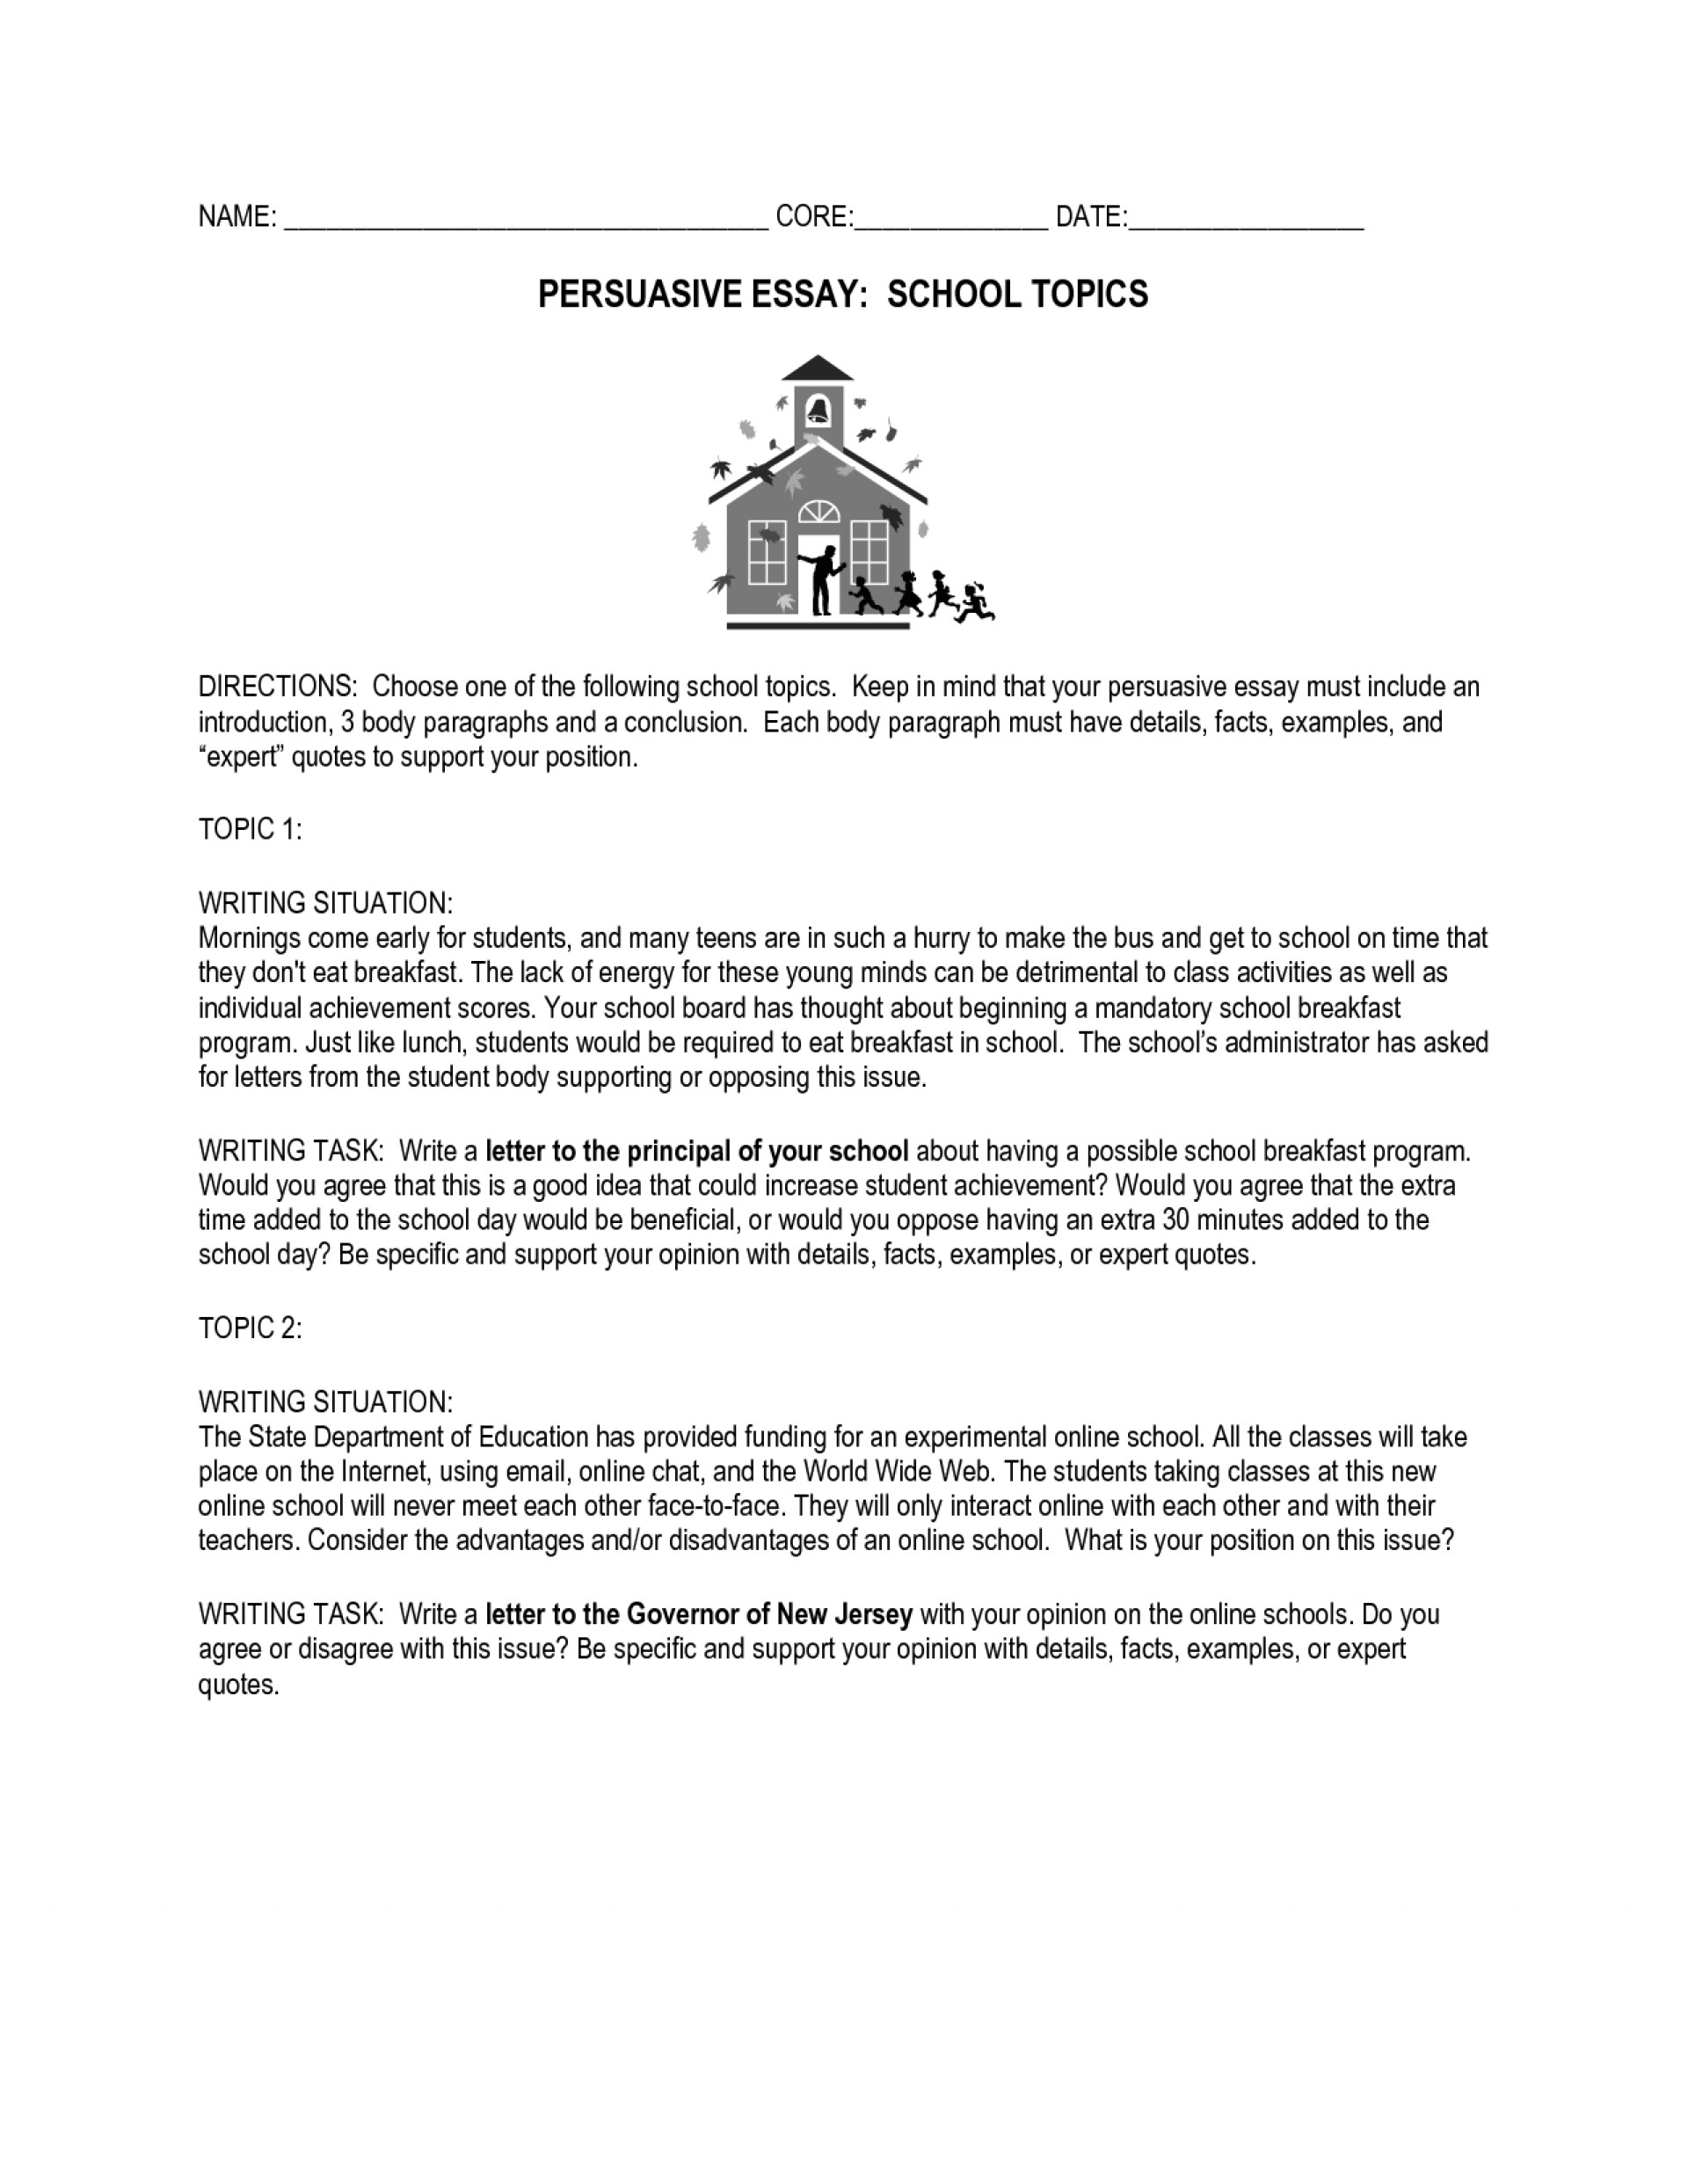 008 Writing Conclusion To An Argumentative Essay On School How Conclude Top Teach Me Write A Good Paragraph For Step By Ppt Middle 1920